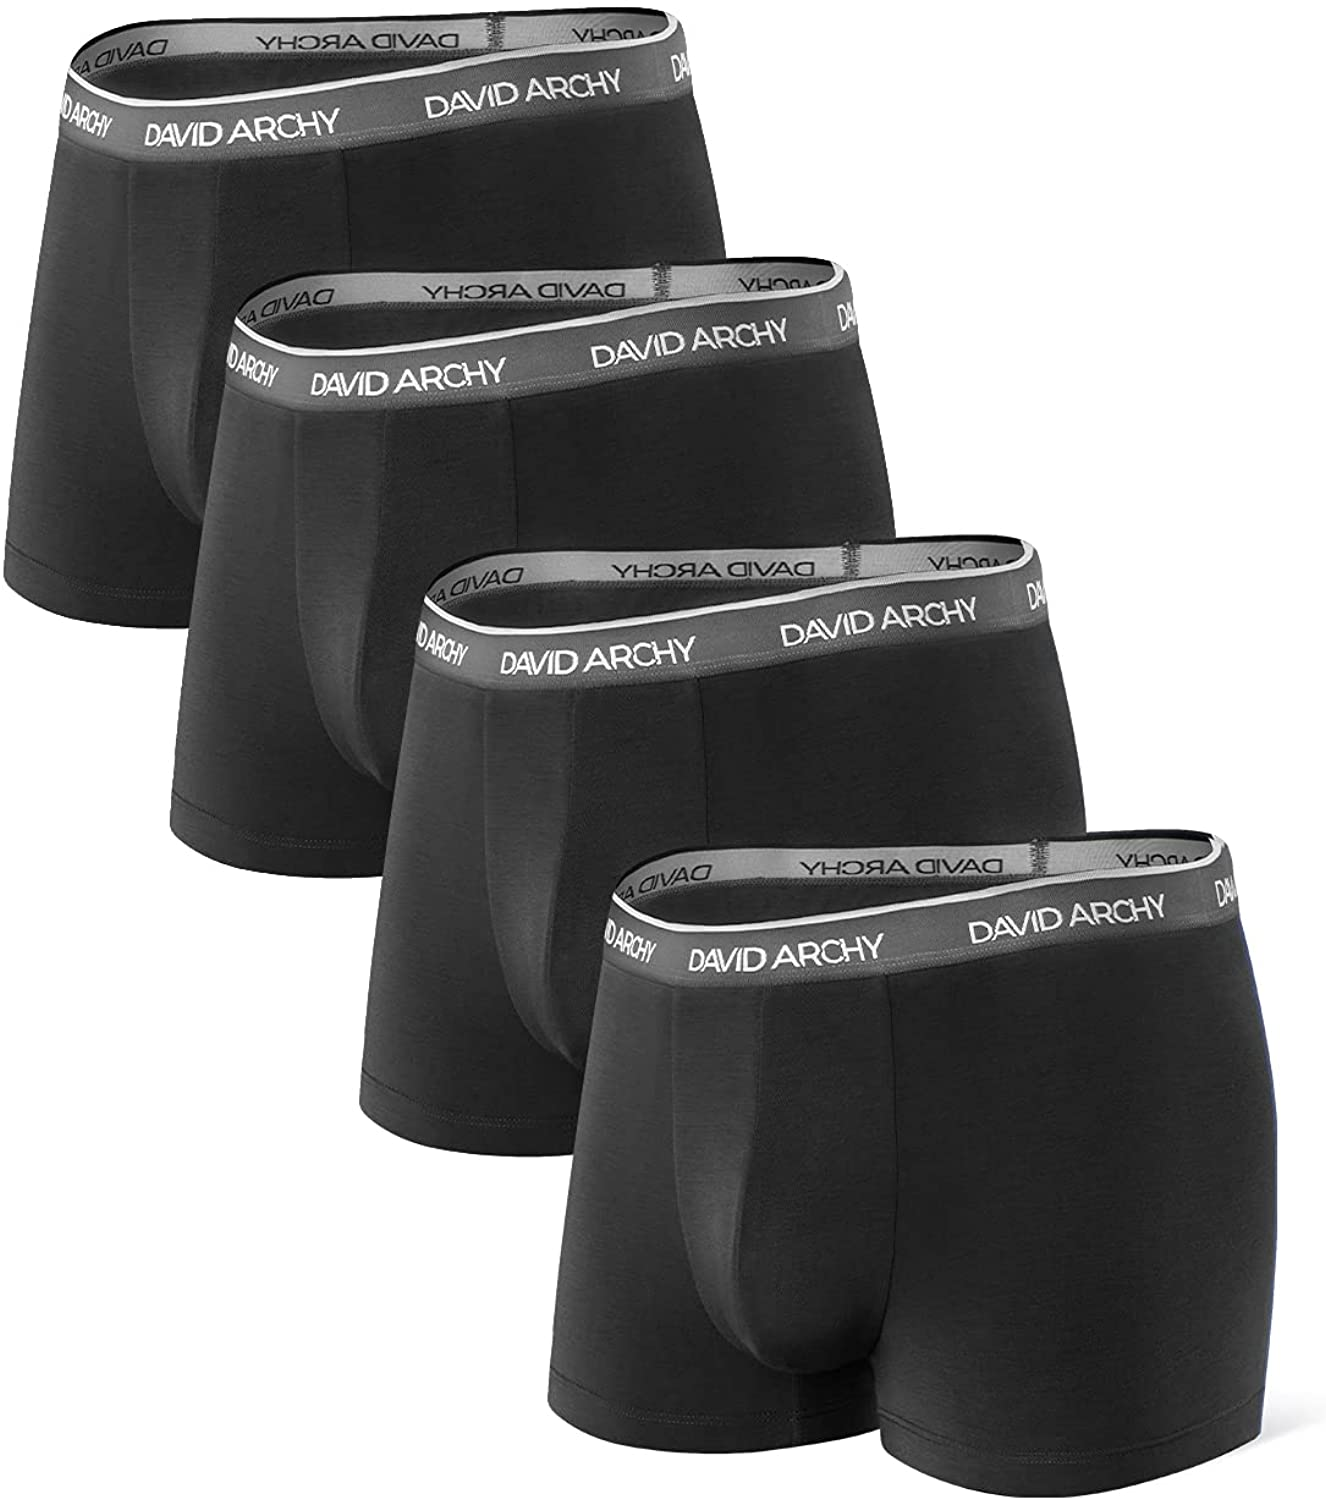 DAVID ARCHY Men's Underwear Ultra Soft Comfy Breathable Bamboo Rayon Trunks in 4 or 7 Pack